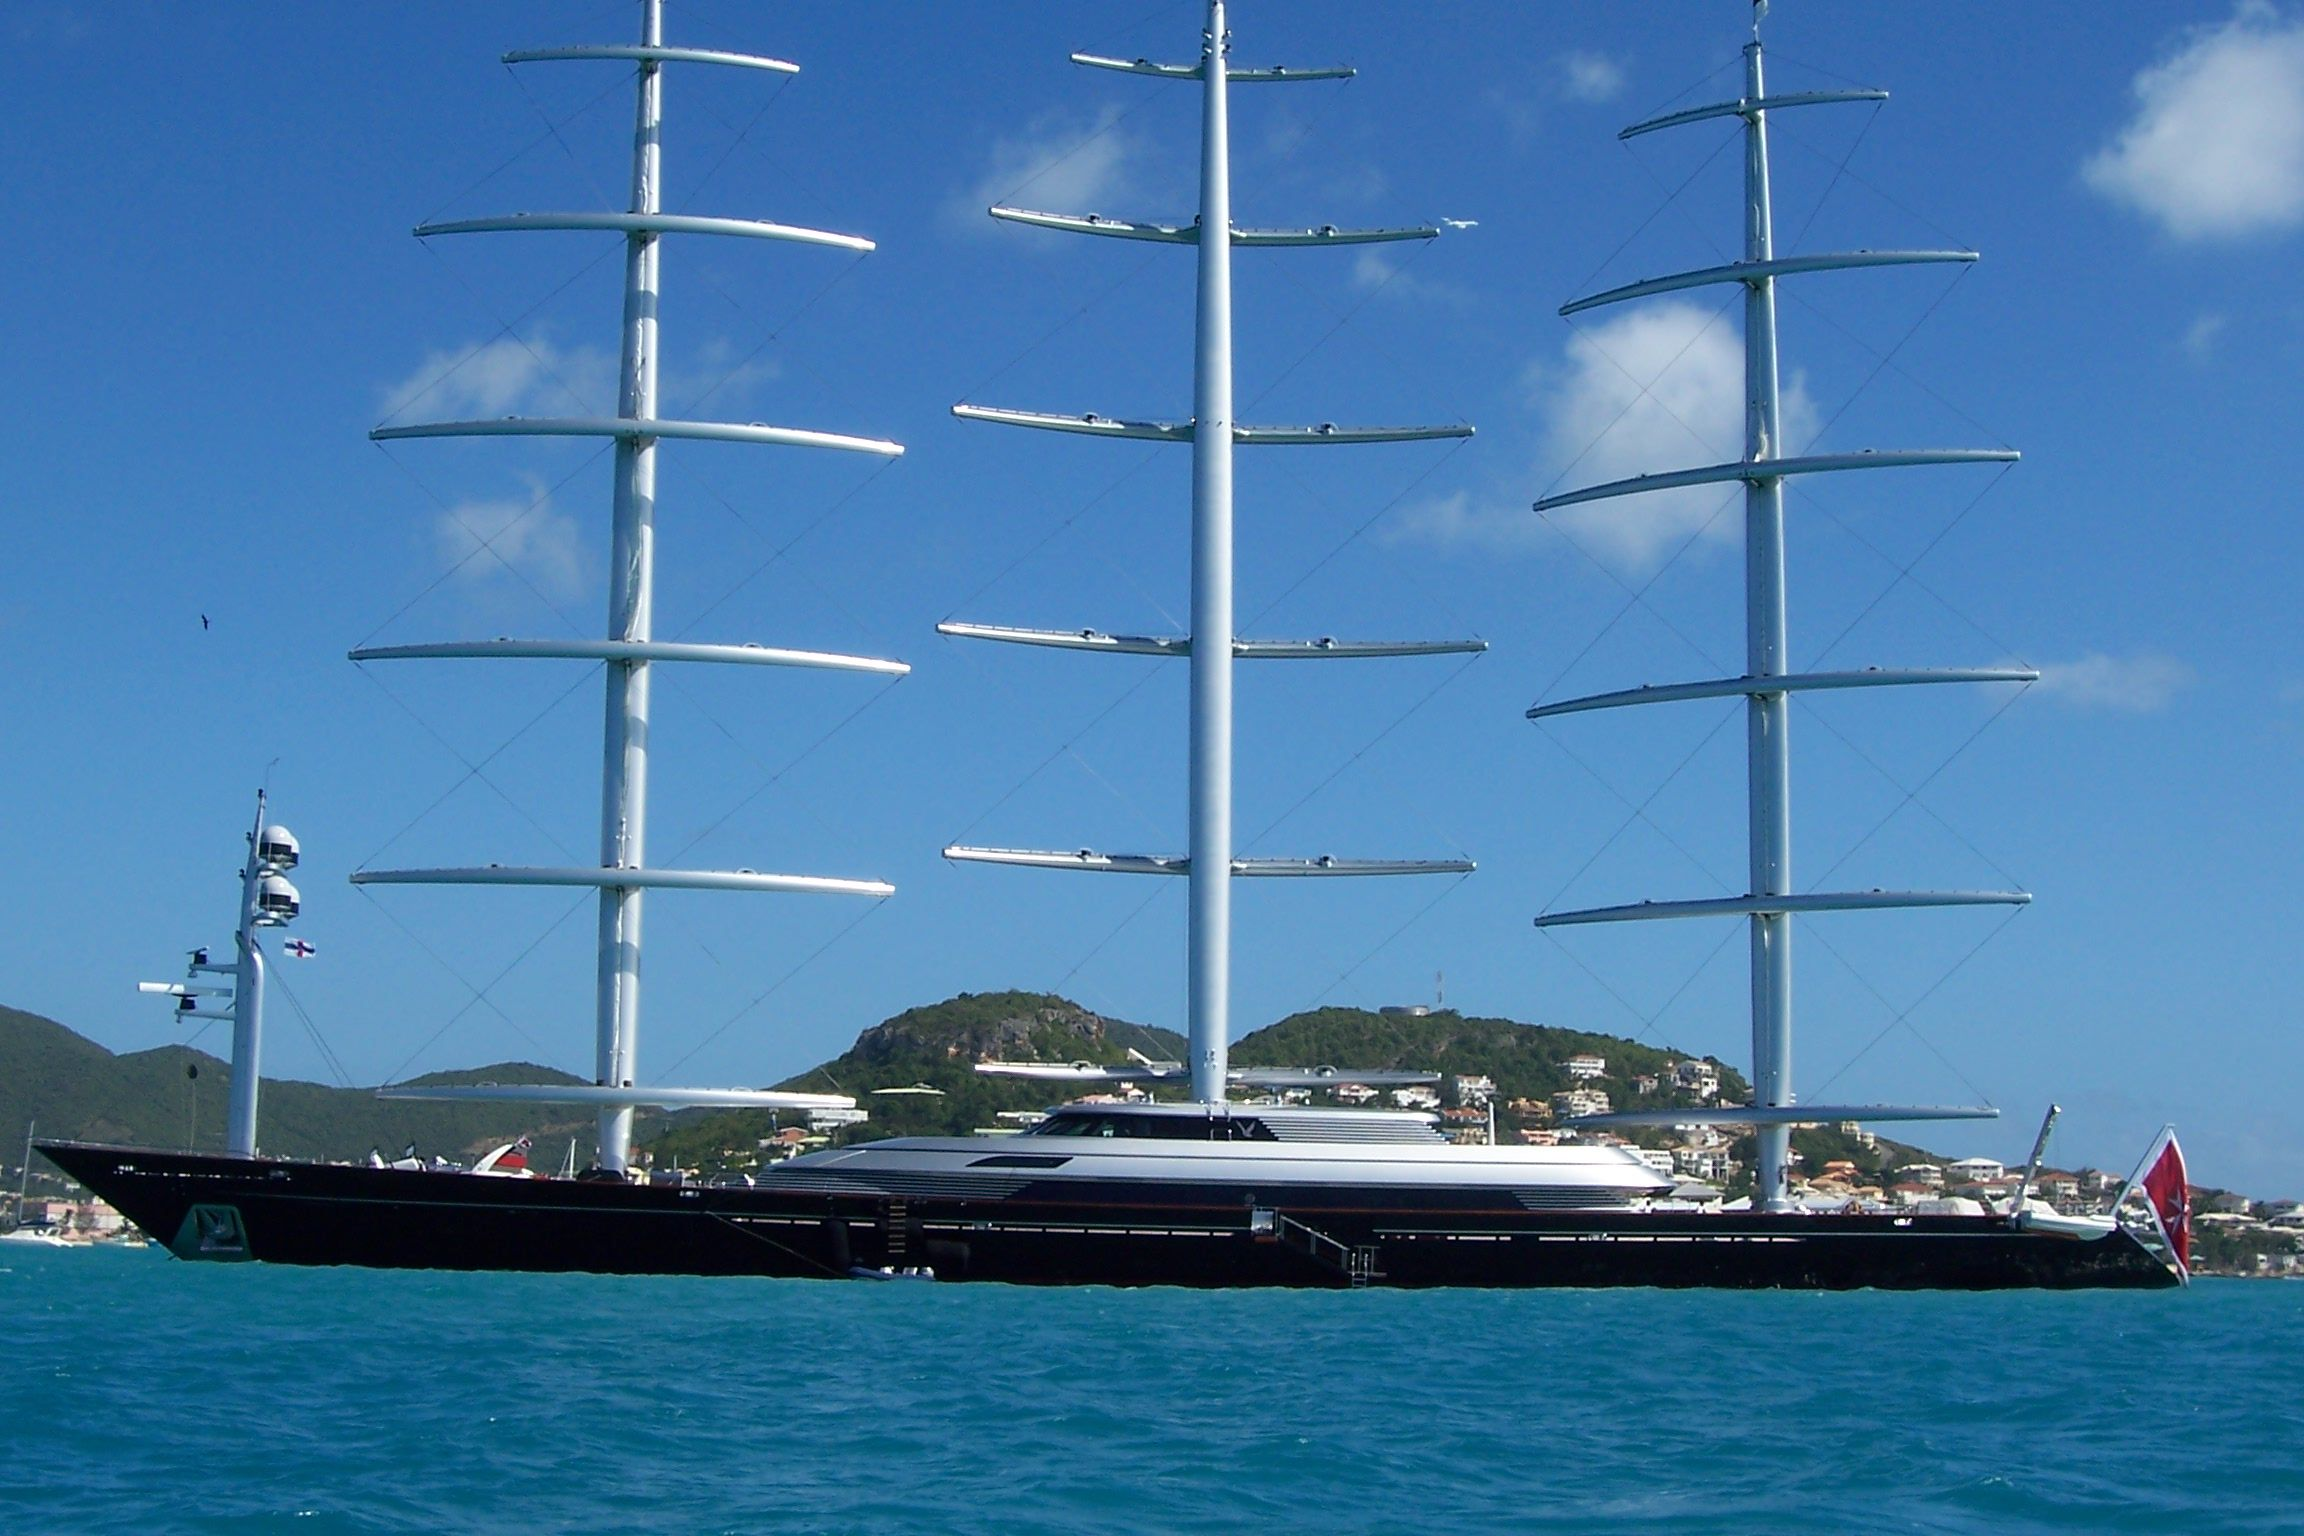 Maltese Falcon Extraordinary Sleek Lines Meet Design Perfection And Revolutionary Sailing System Available For Charter With Images Yacht Vacations Sailing Yacht Sailing